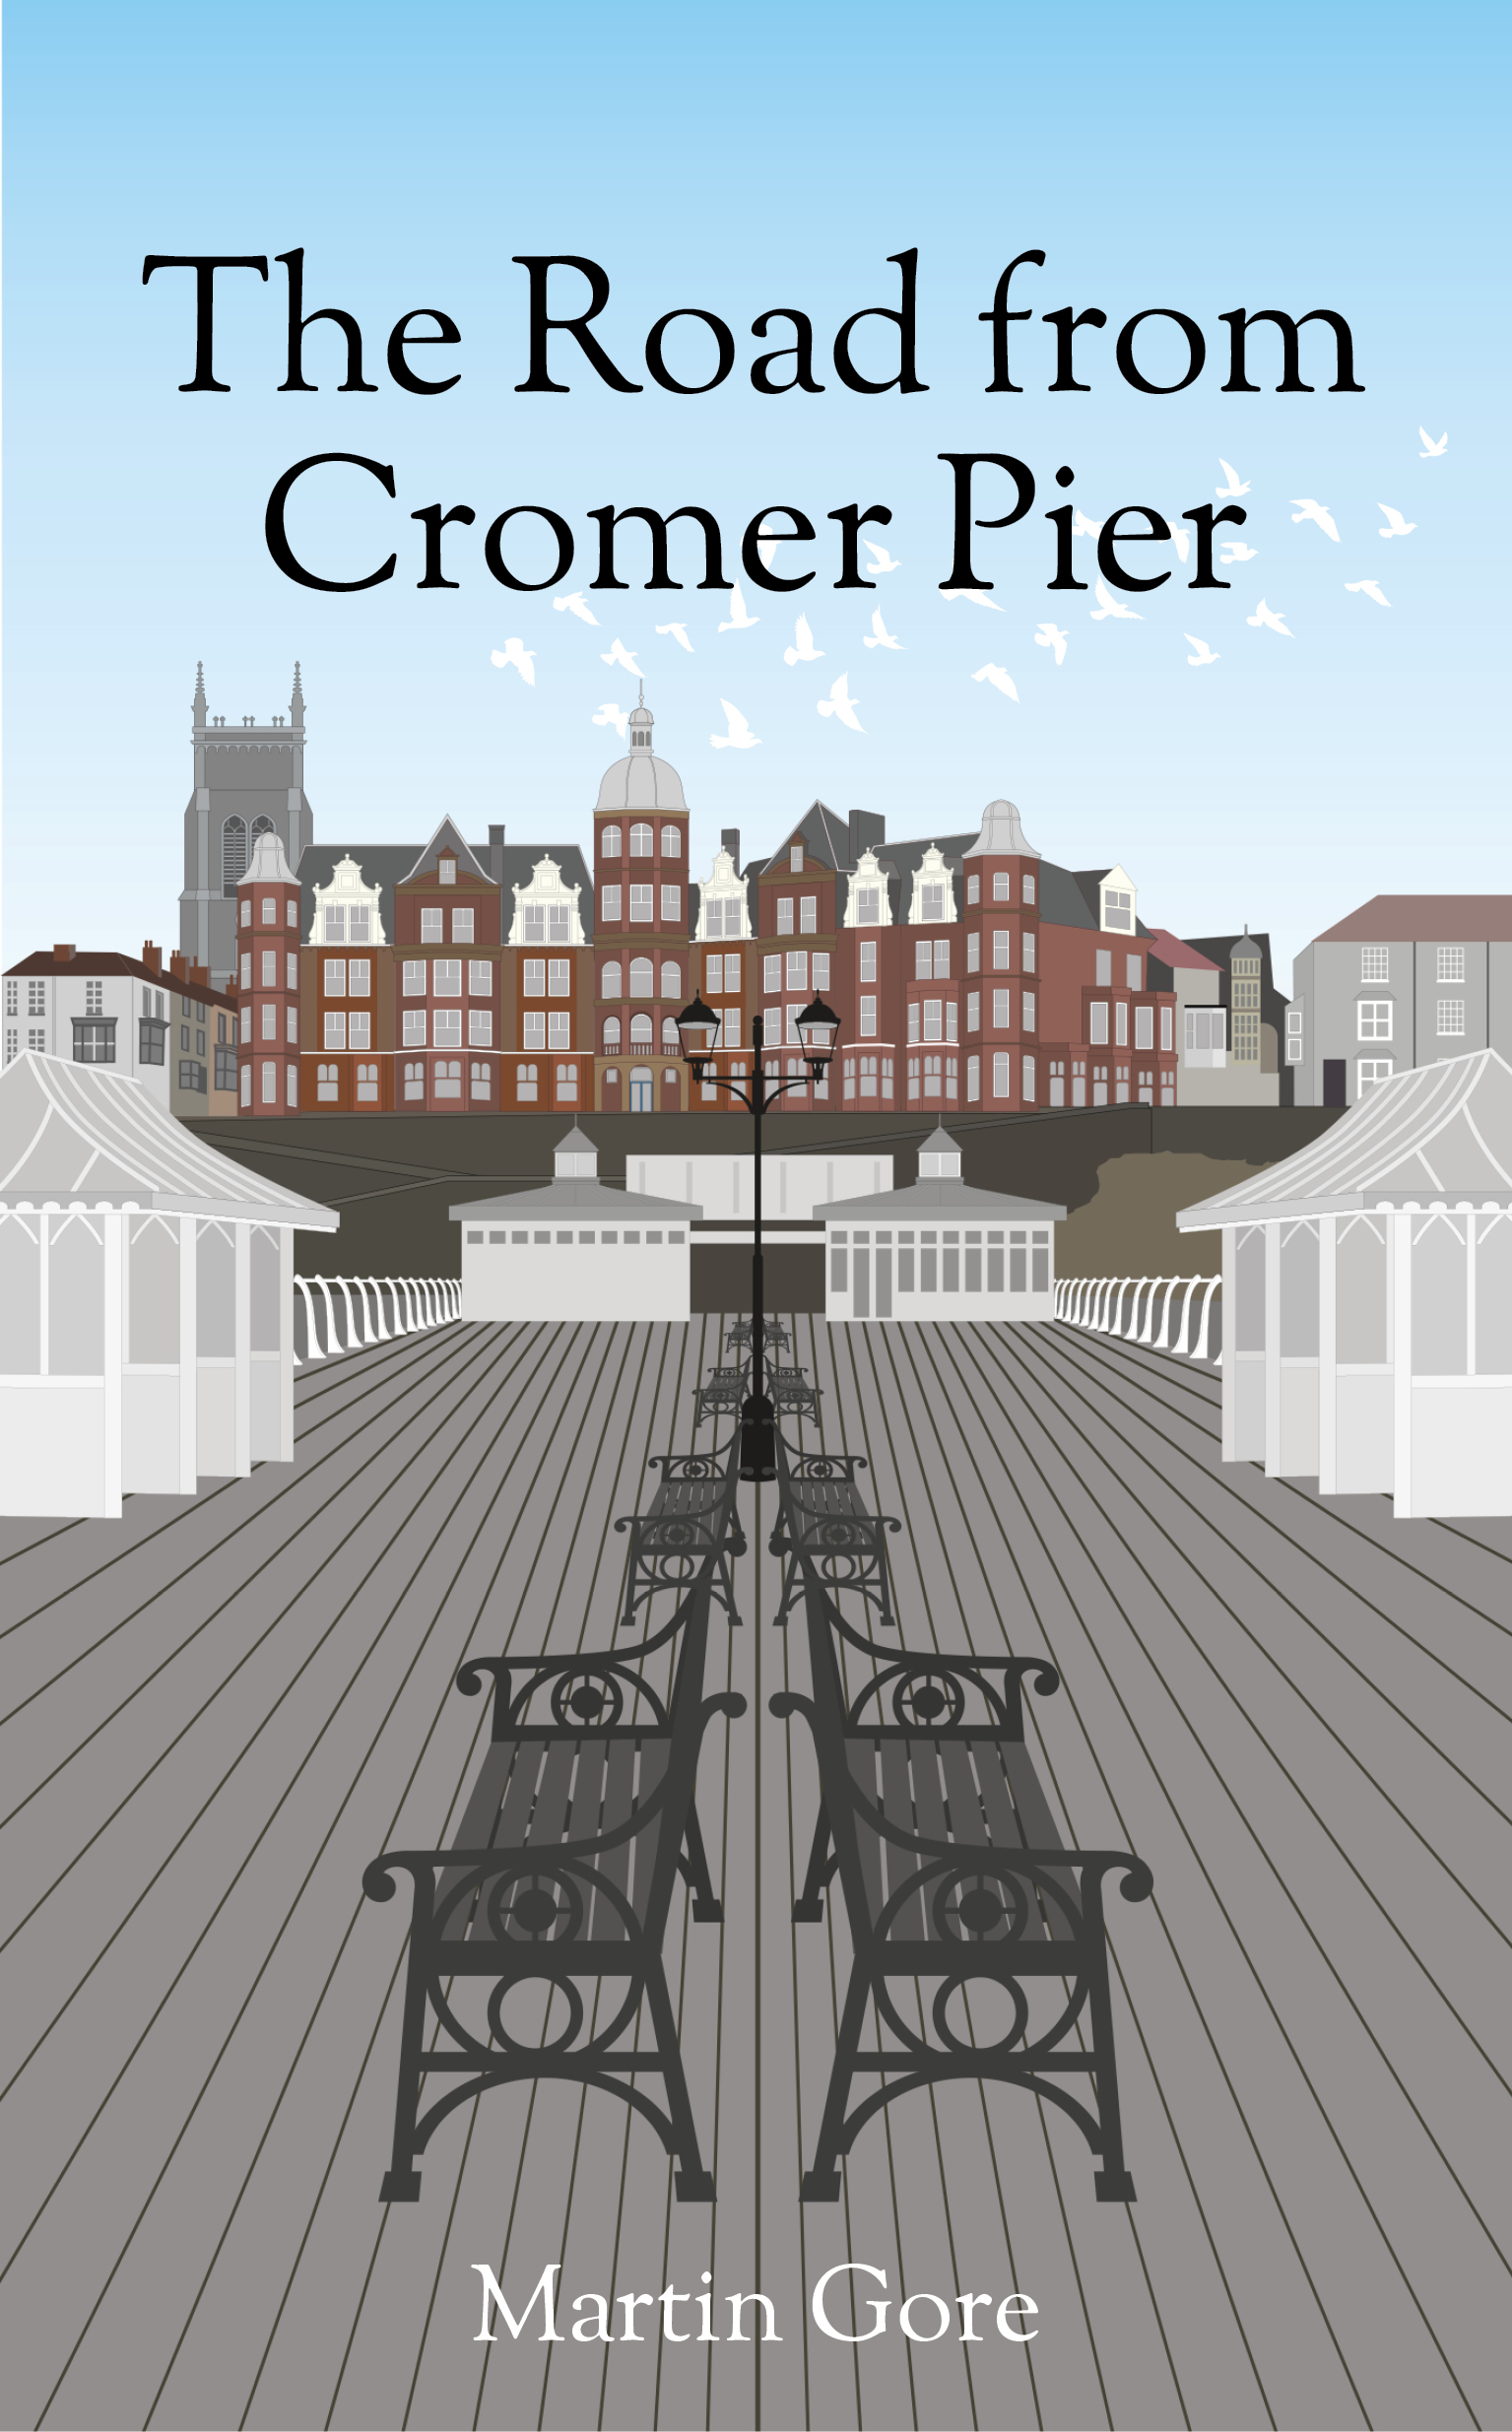 Cover Reveal: The Road from Cromer Pier, by Martin Gore